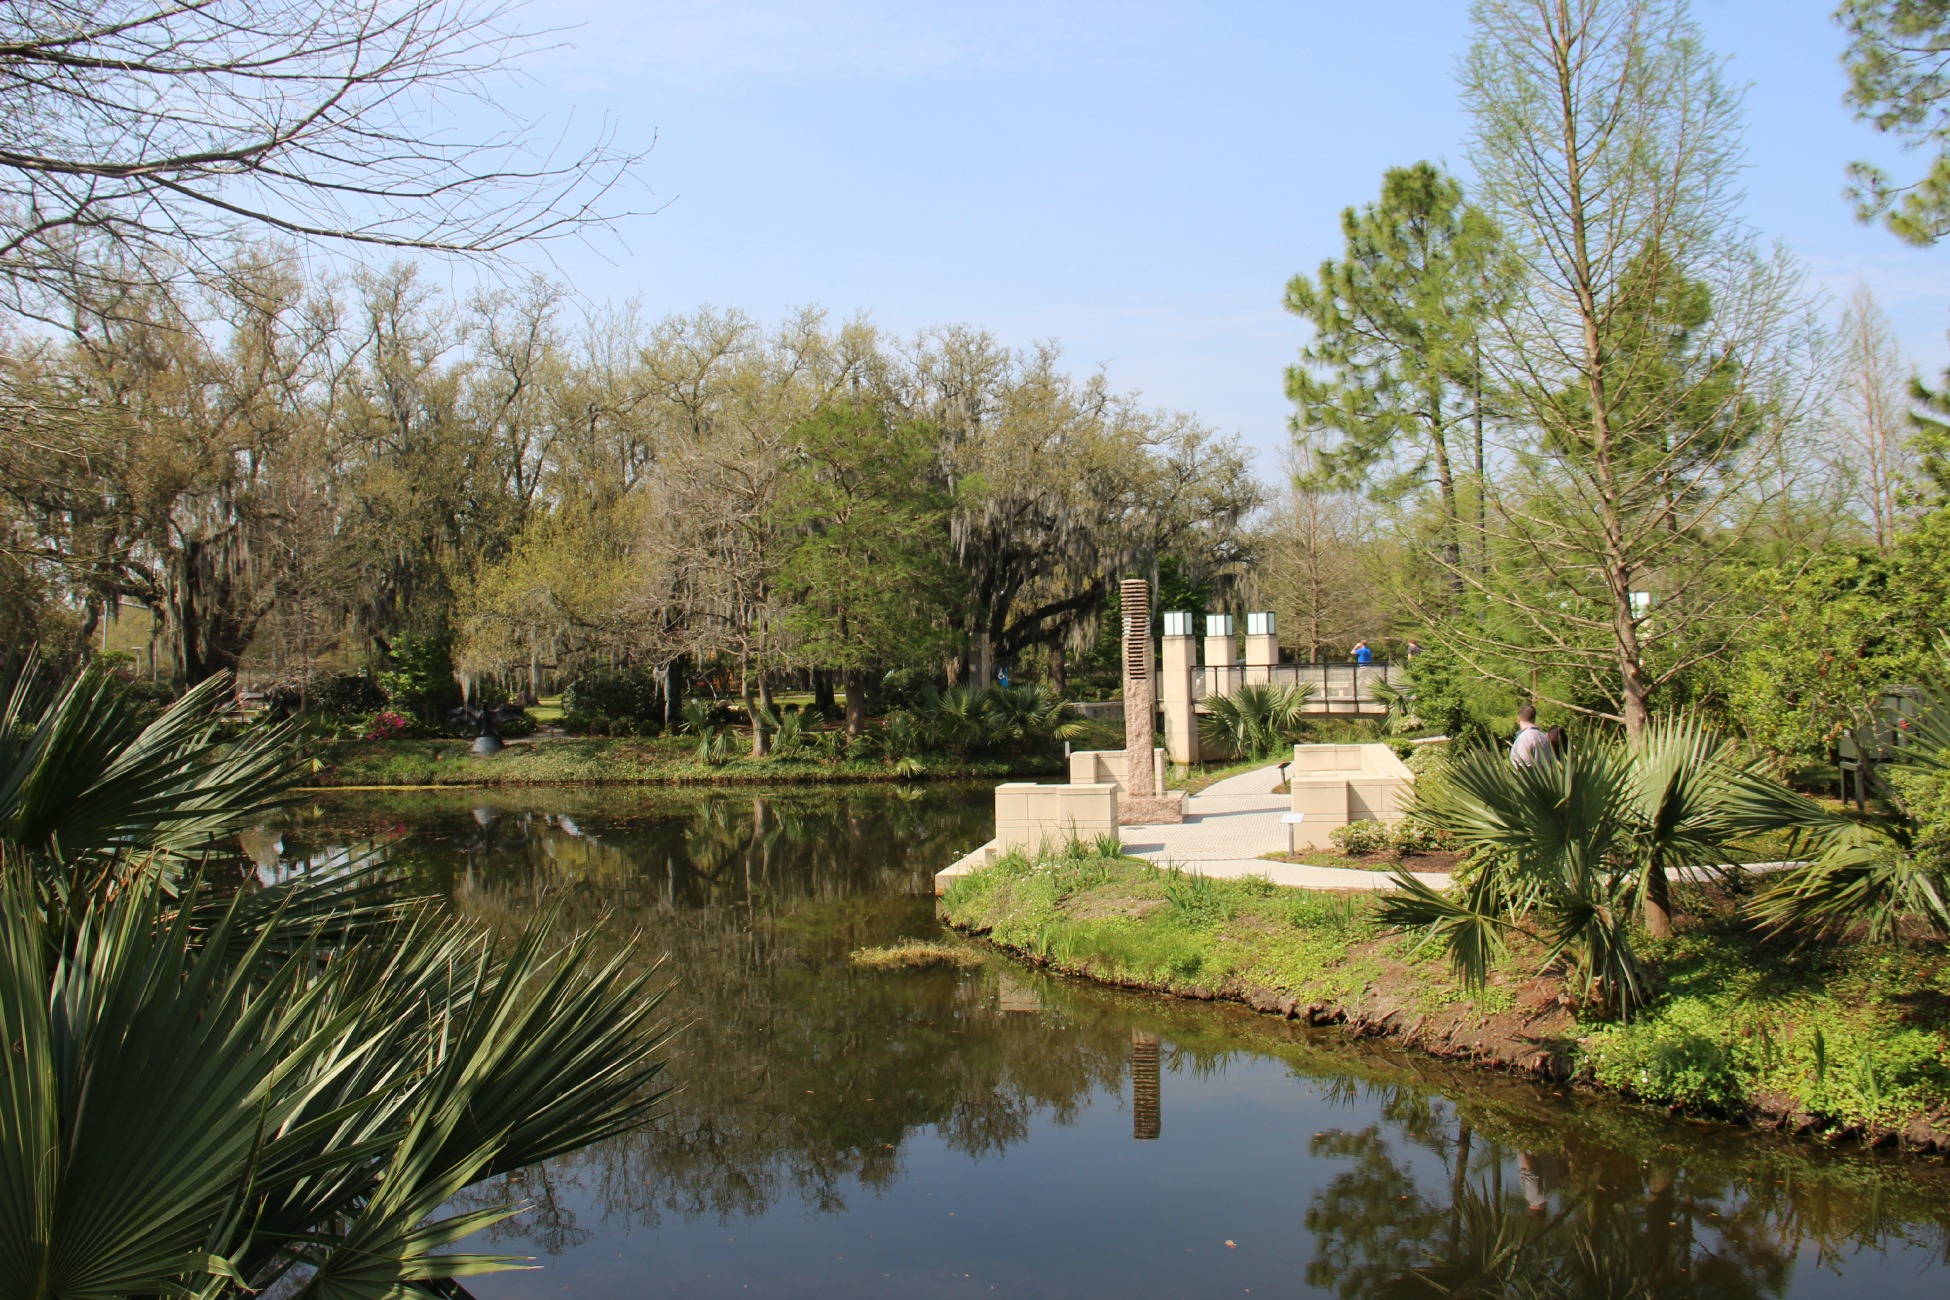 Sculpture Garden   Things to Do in New Orleans   Greater New Orleans ...